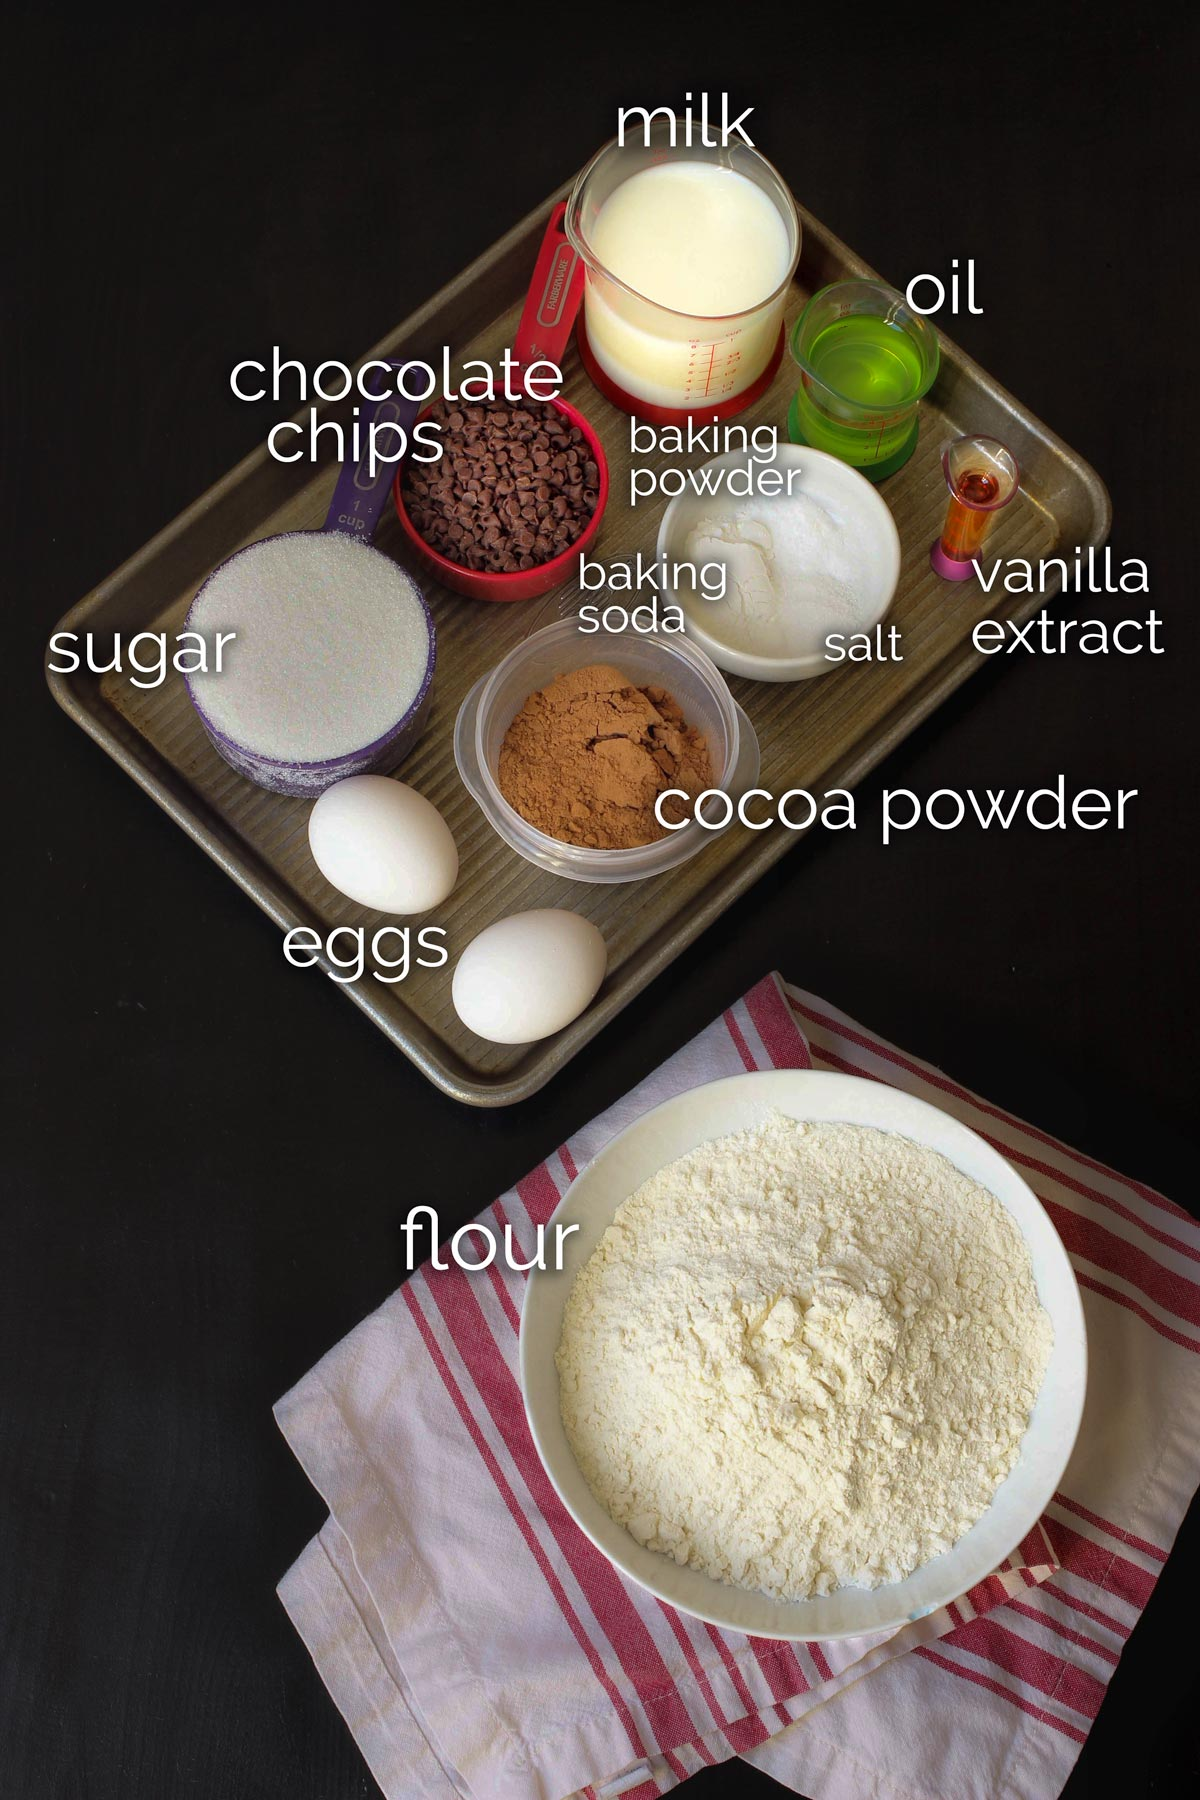 ingredients for chocolate donuts laid out on the table top.